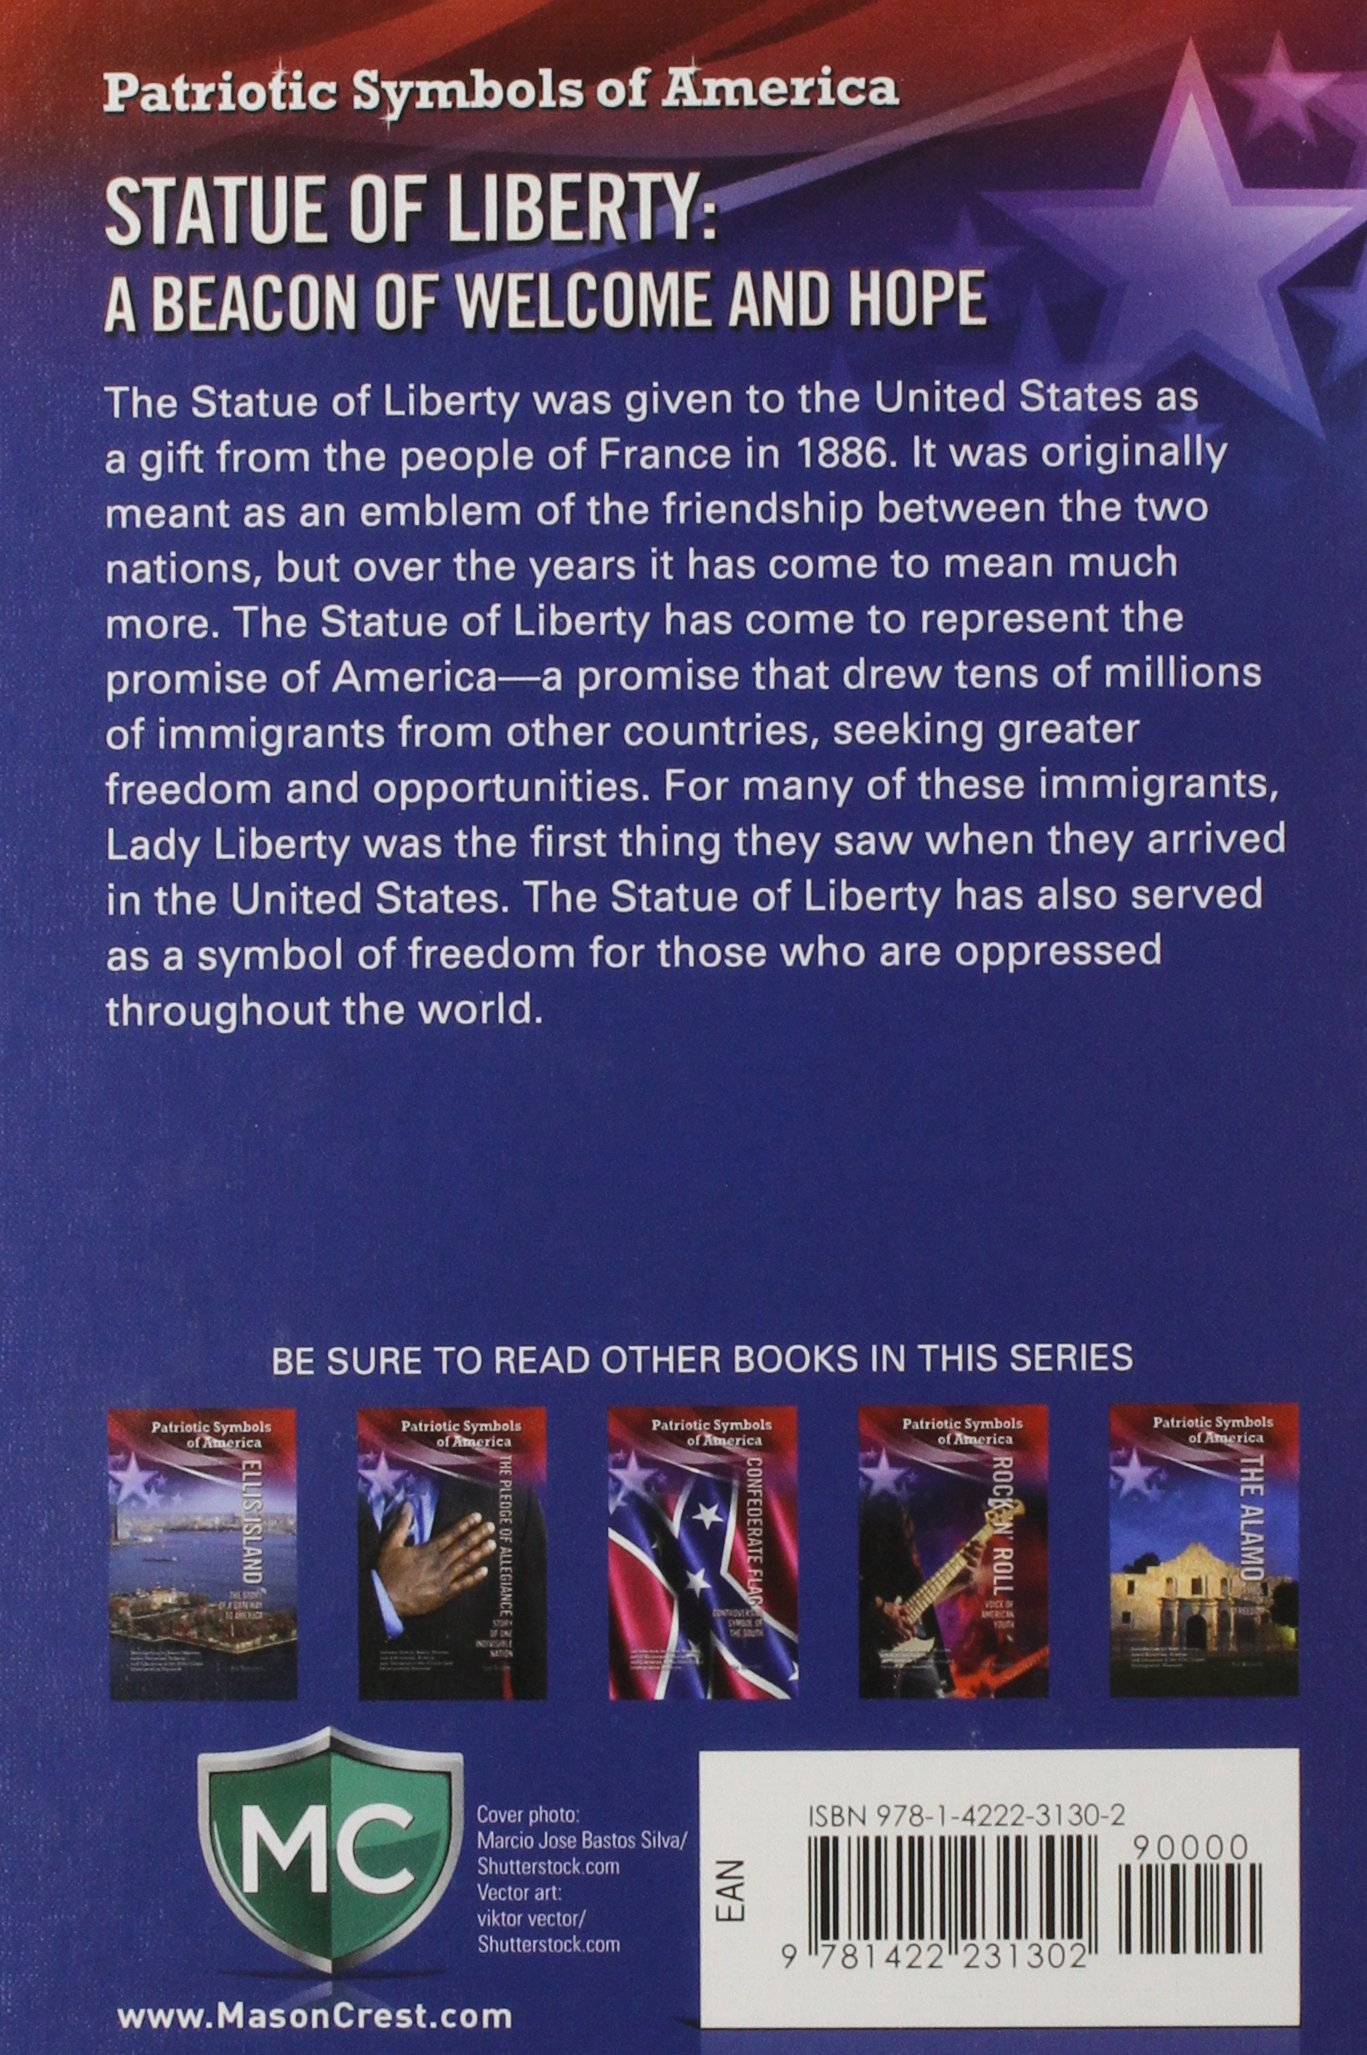 Statue of liberty a beacon of welcome and hope patriotic symbols statue of liberty a beacon of welcome and hope patriotic symbols of america hal marcovitz 9781422231302 amazon books biocorpaavc Gallery